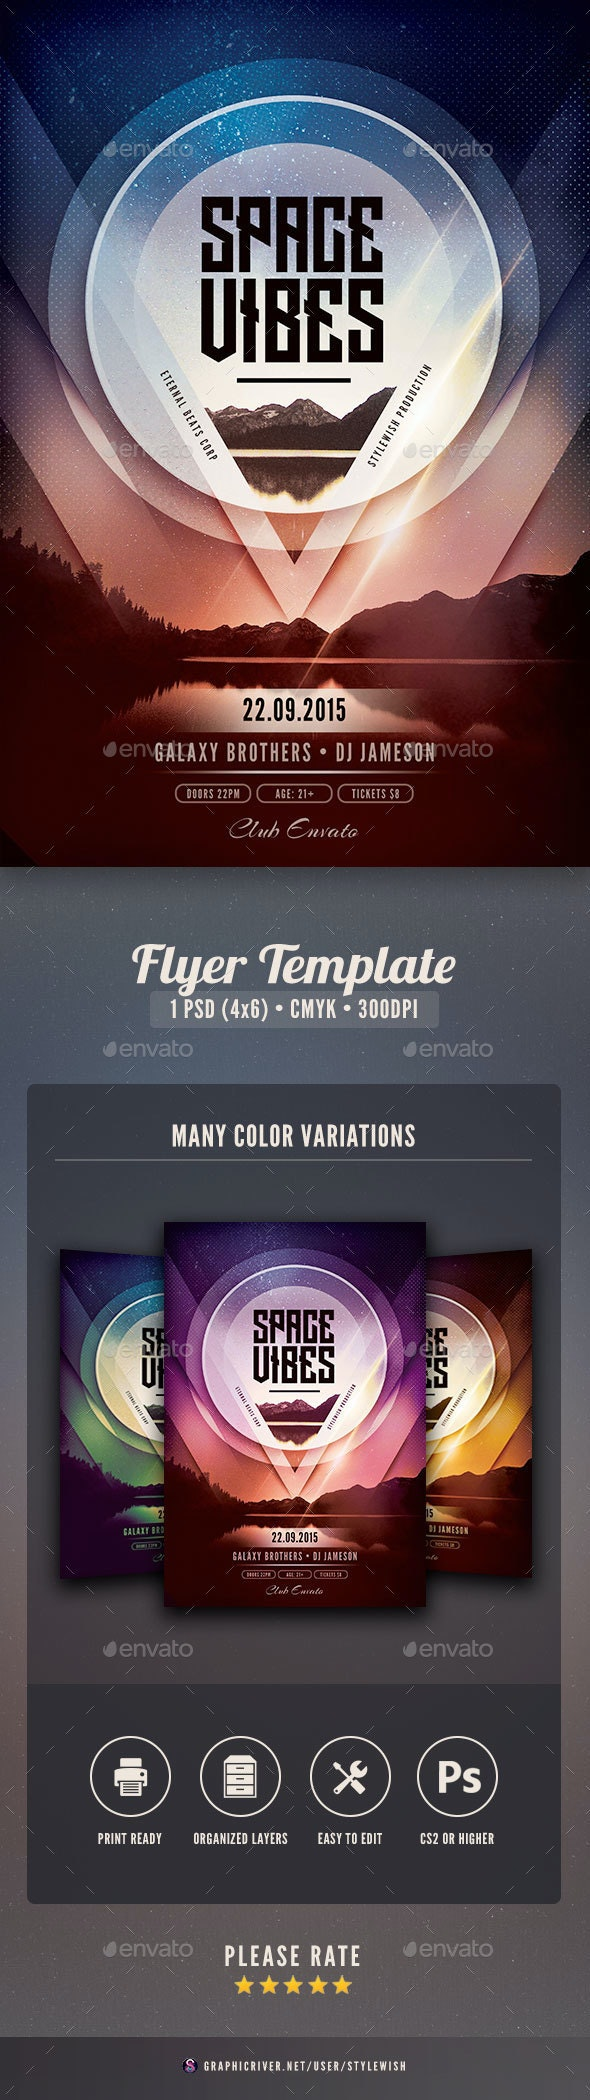 Space Vibes Flyer - Clubs & Parties Events